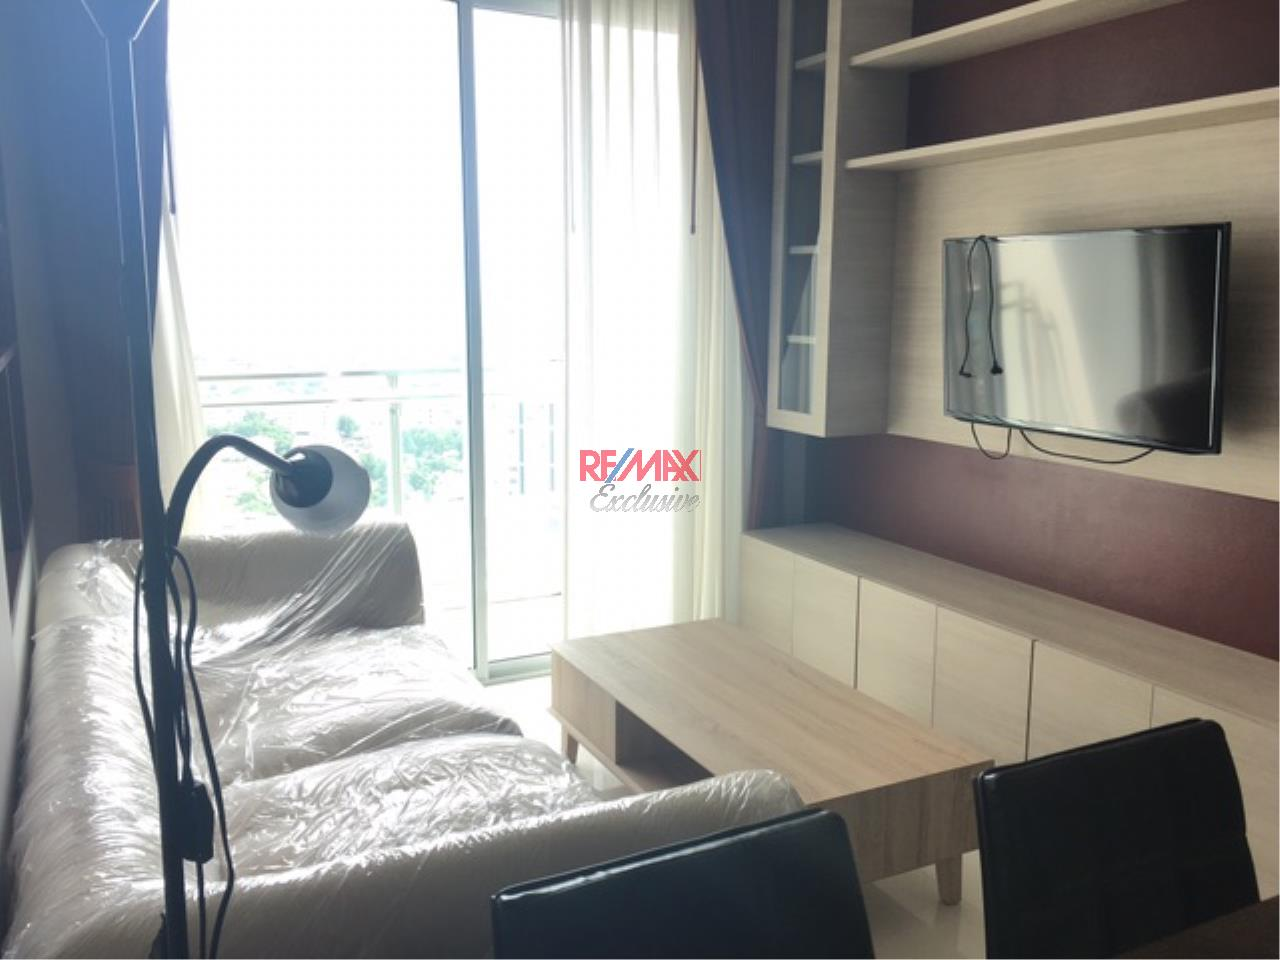 RE/MAX Exclusive Agency's The BLOOM, Sukhumvit 71.,2 Bedroom, 59 Sqm., Fully-Furnished, EXCLUSIVE UNIT, TOP FLOOR for RENT !! 10